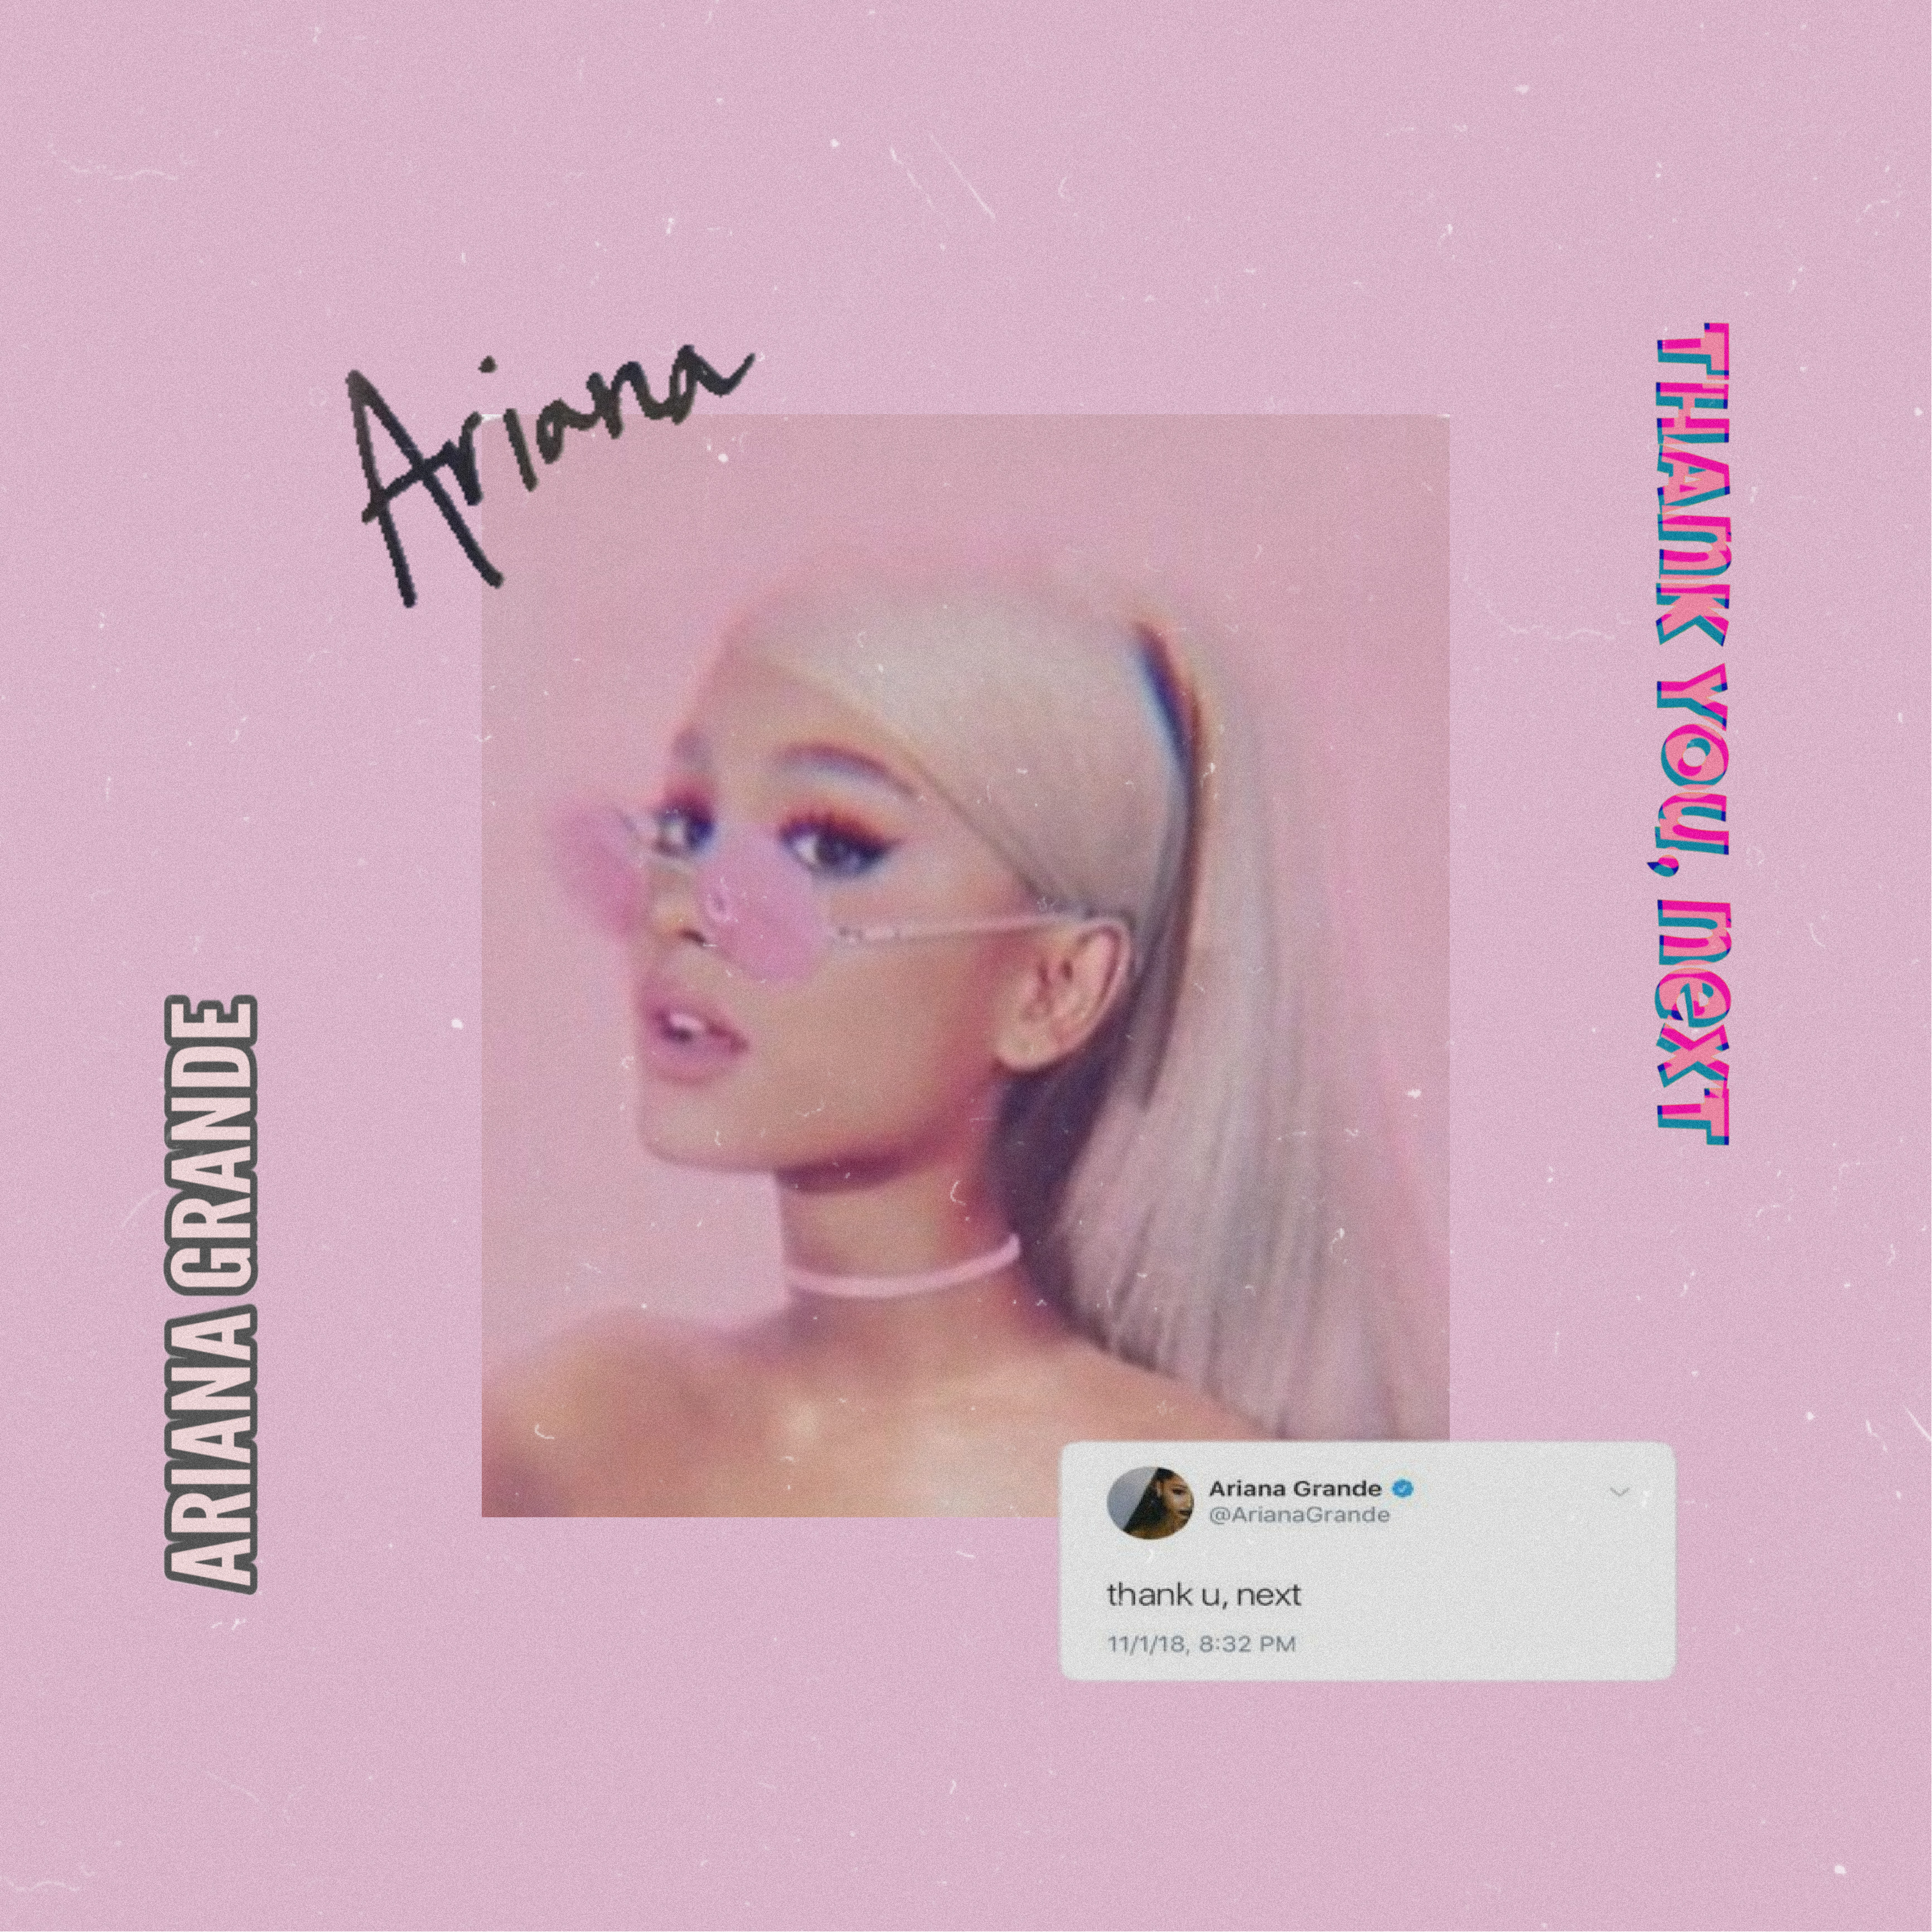 Arianagrande Image By 𝑒𝓅𝓍𝓅𝒽𝒶𝓃𝓎